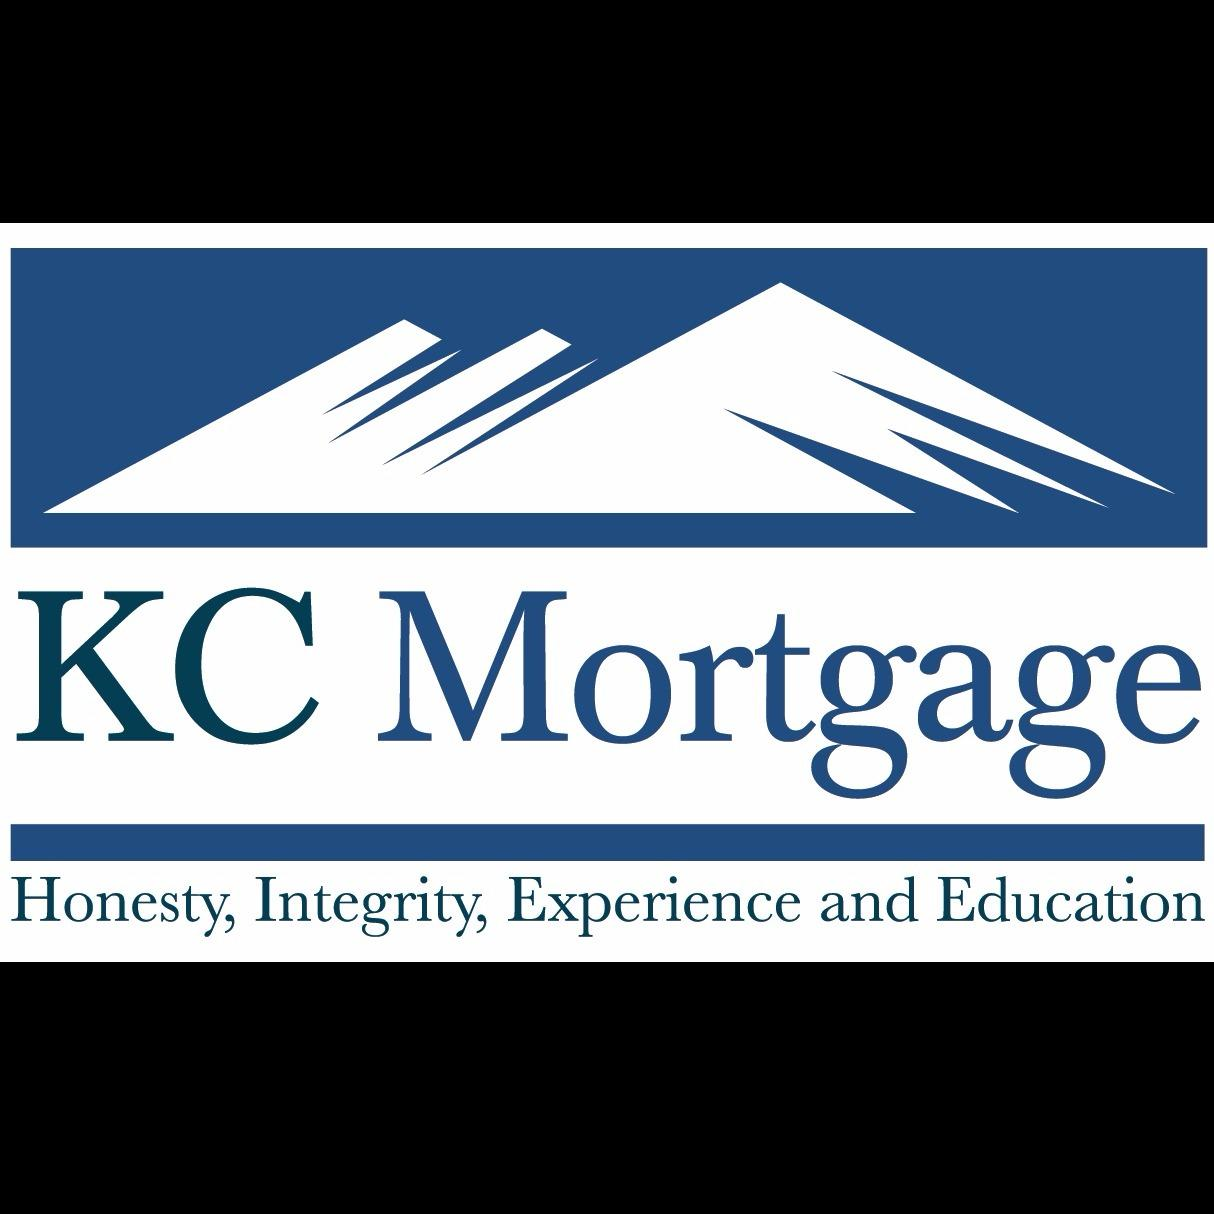 Kc Mortgage Llc  Mortgage Broker  Castle Rock, Co 80104. Office Of Fleet Management Rehab Knoxville Tn. One Year Degree Program Advertise On Internet. Get Certification Online Latex Gloves Powdered. Commonwealth Auto Sales Banking Courses Online. Bluecross Blueshield Medicare. Low Income Pet Insurance Dr Dave Chiropractor. How To Get Free Credit Score Online. Carpet Cleaners Pet Stains 16x10 Garage Door